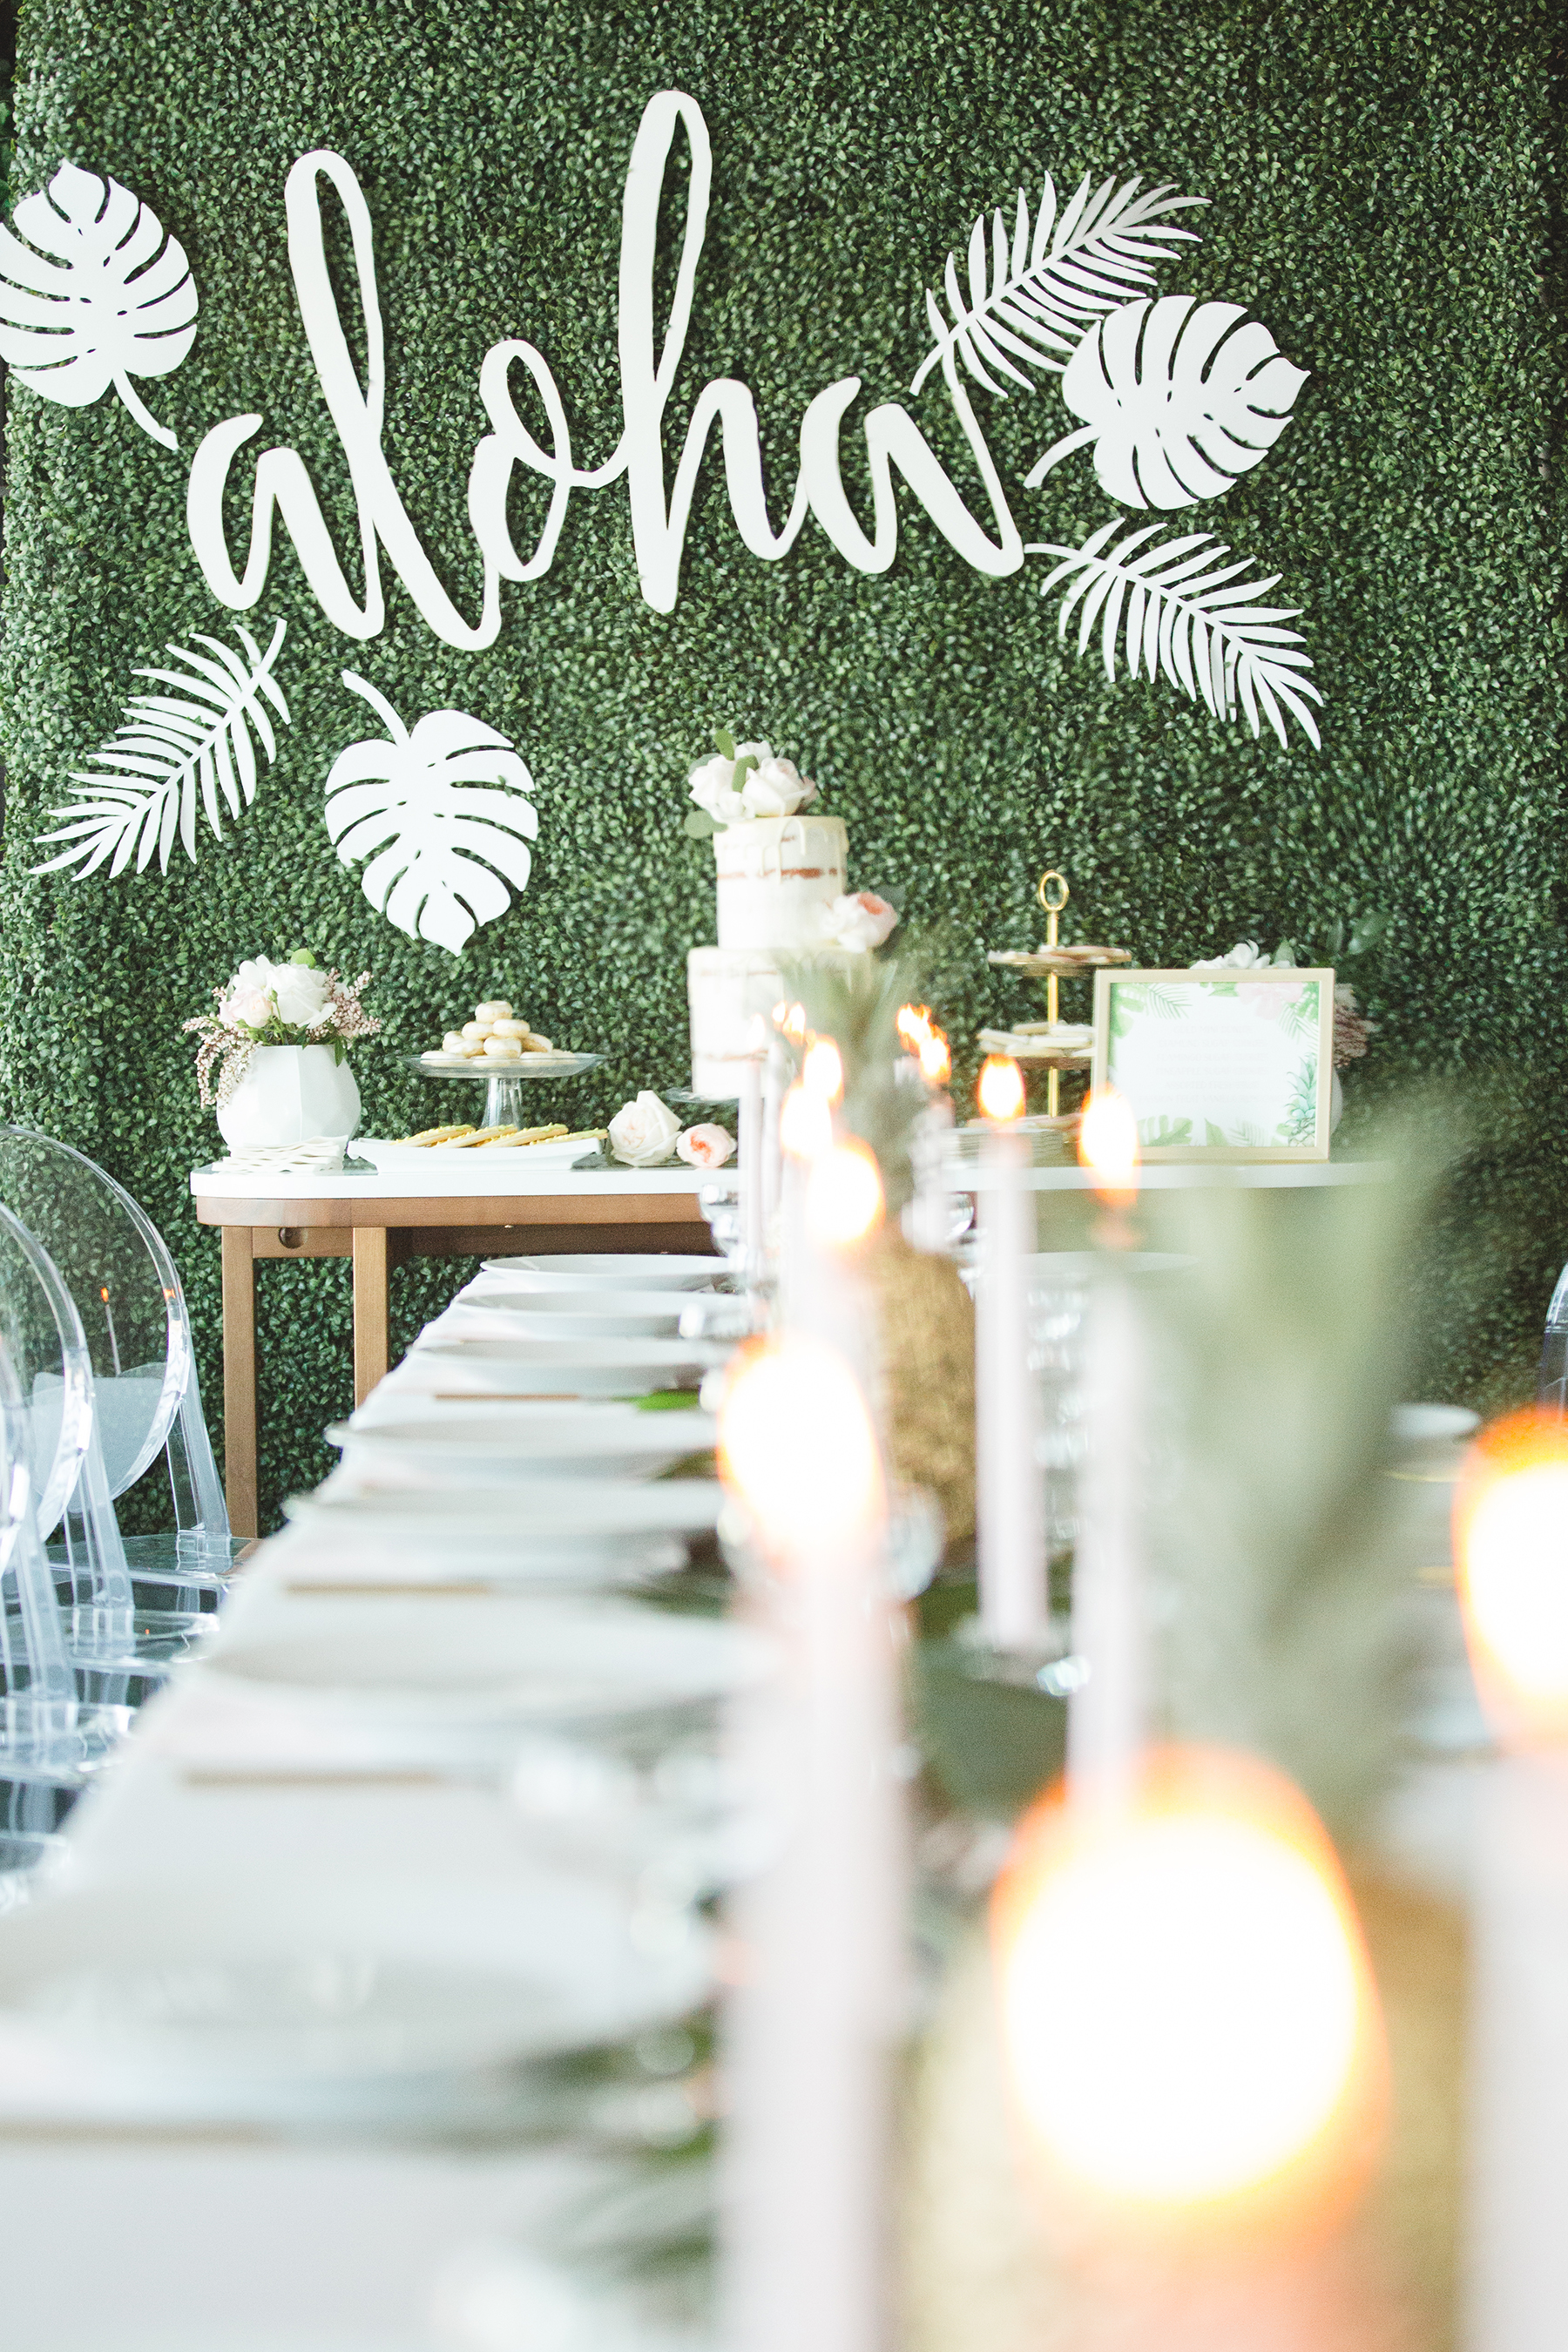 Aloha Wedding Backdrop